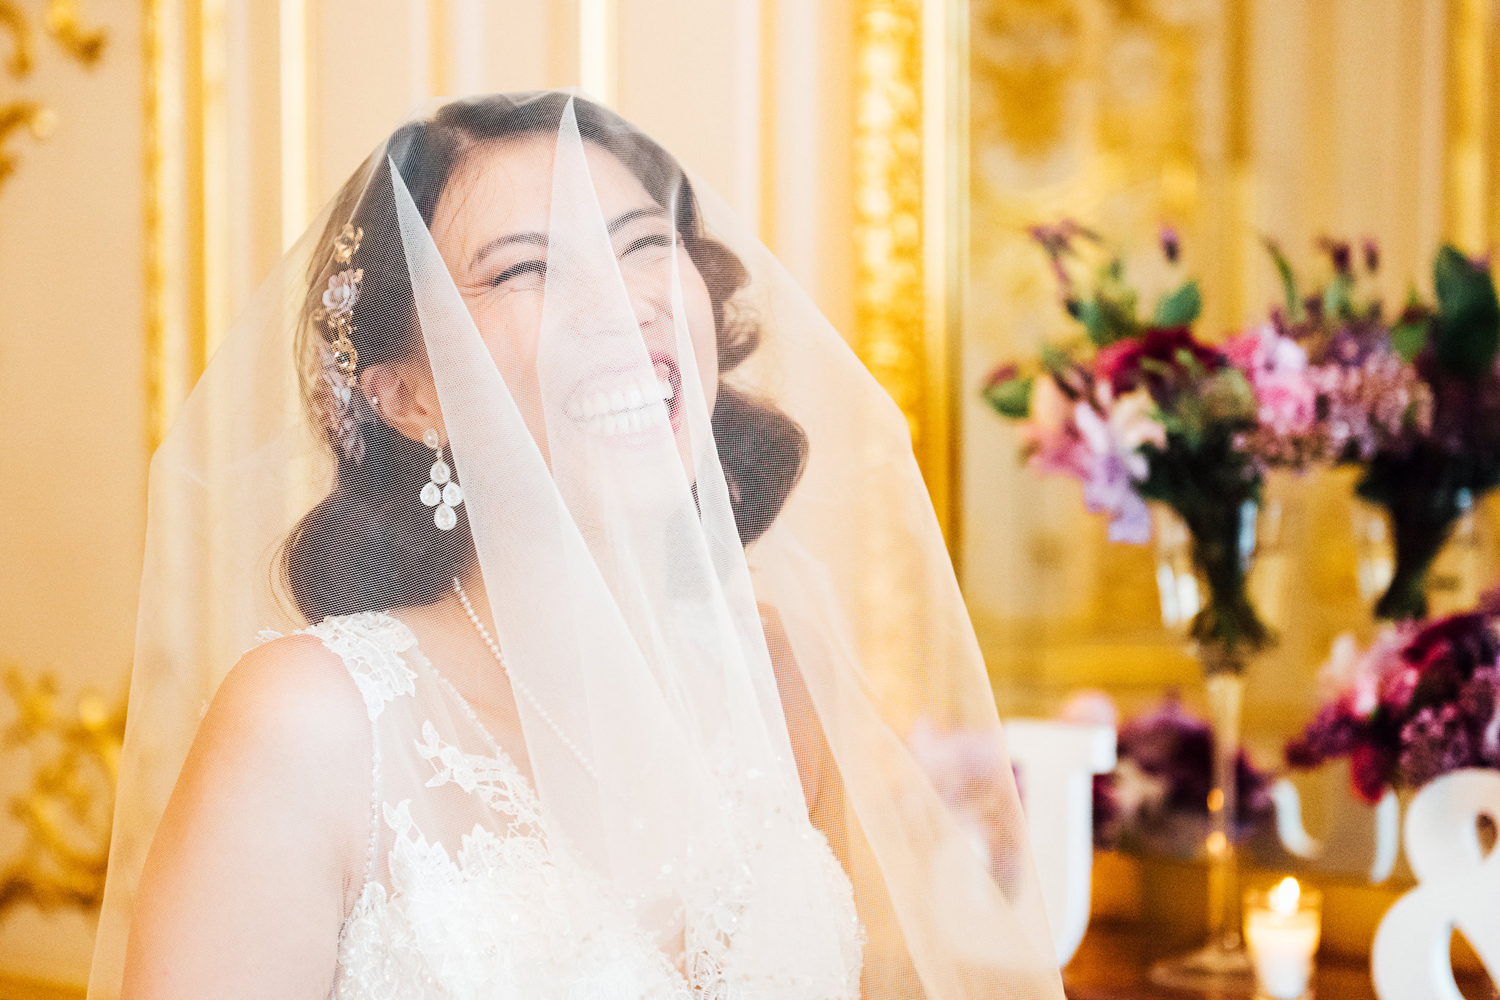 325-katie-mitchell-paris-wedding-elopement-photographer-france.jpg